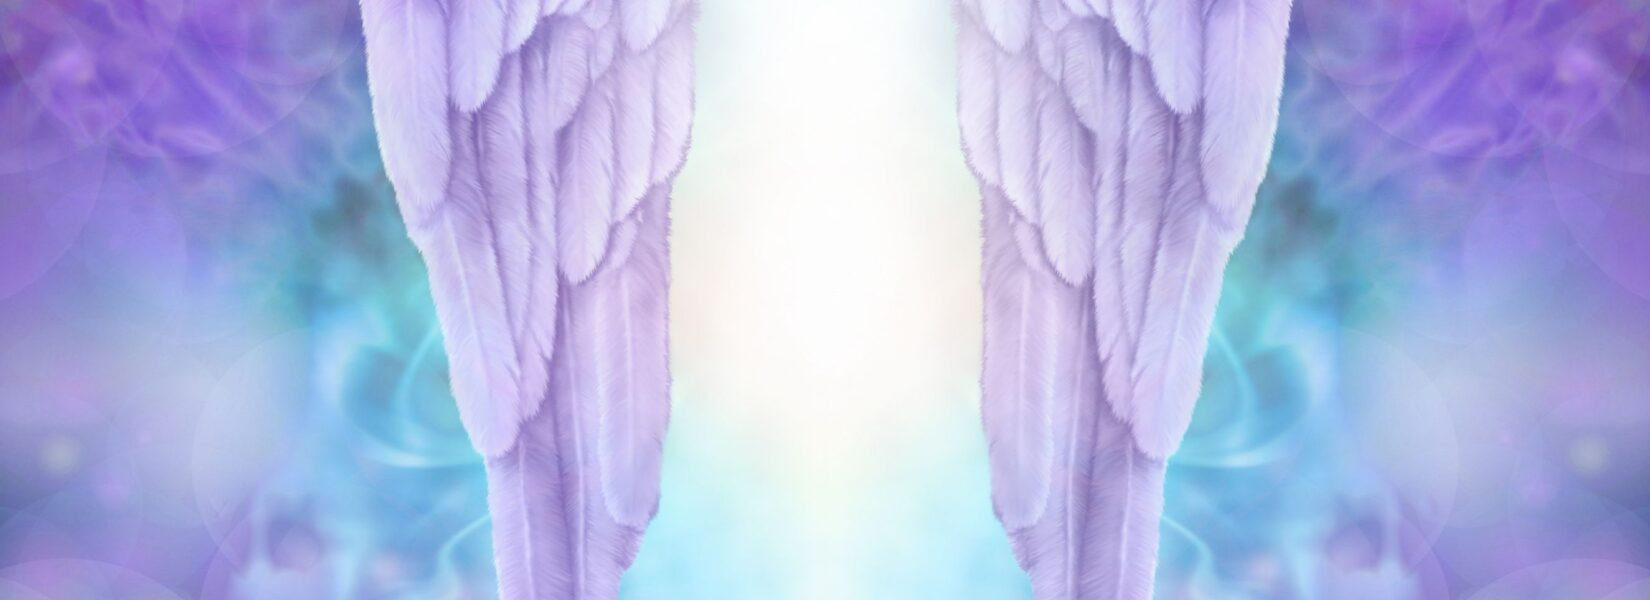 1111 Meaning – Significance & Symbolism of Seeing Angel Number 11:11